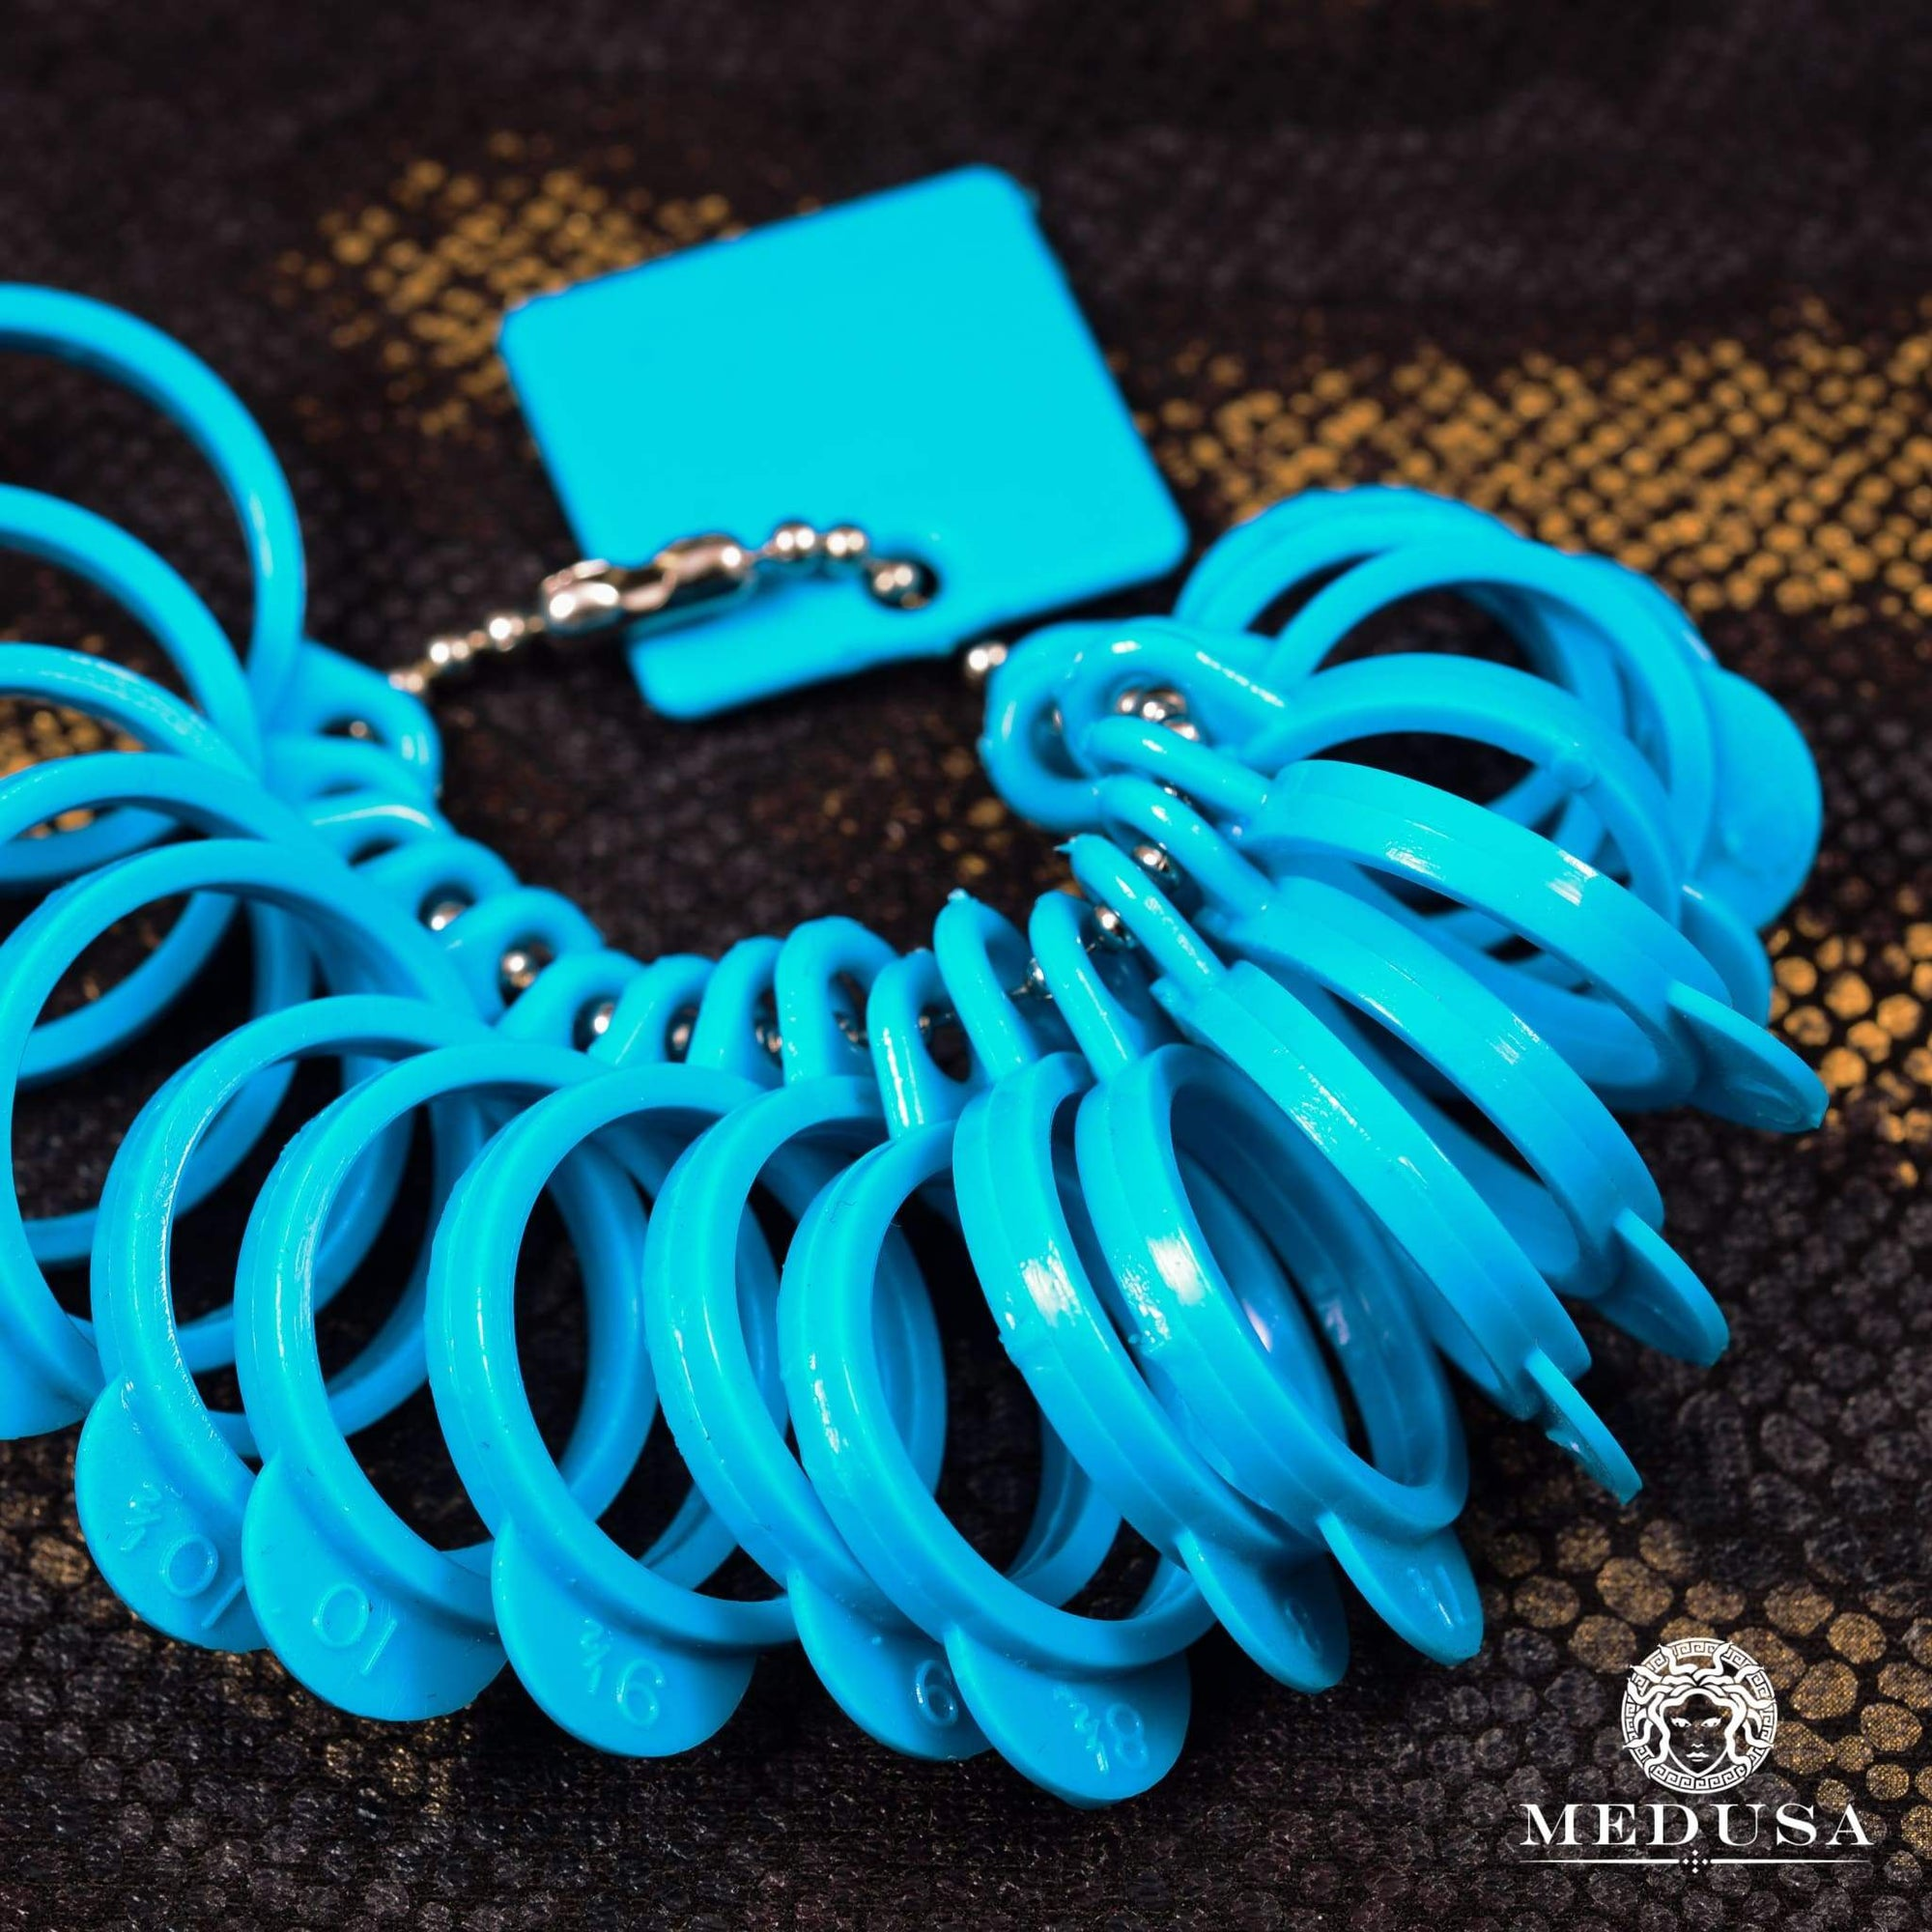 Medusa Jewelry / Miscellaneous Plastic Ring - Free